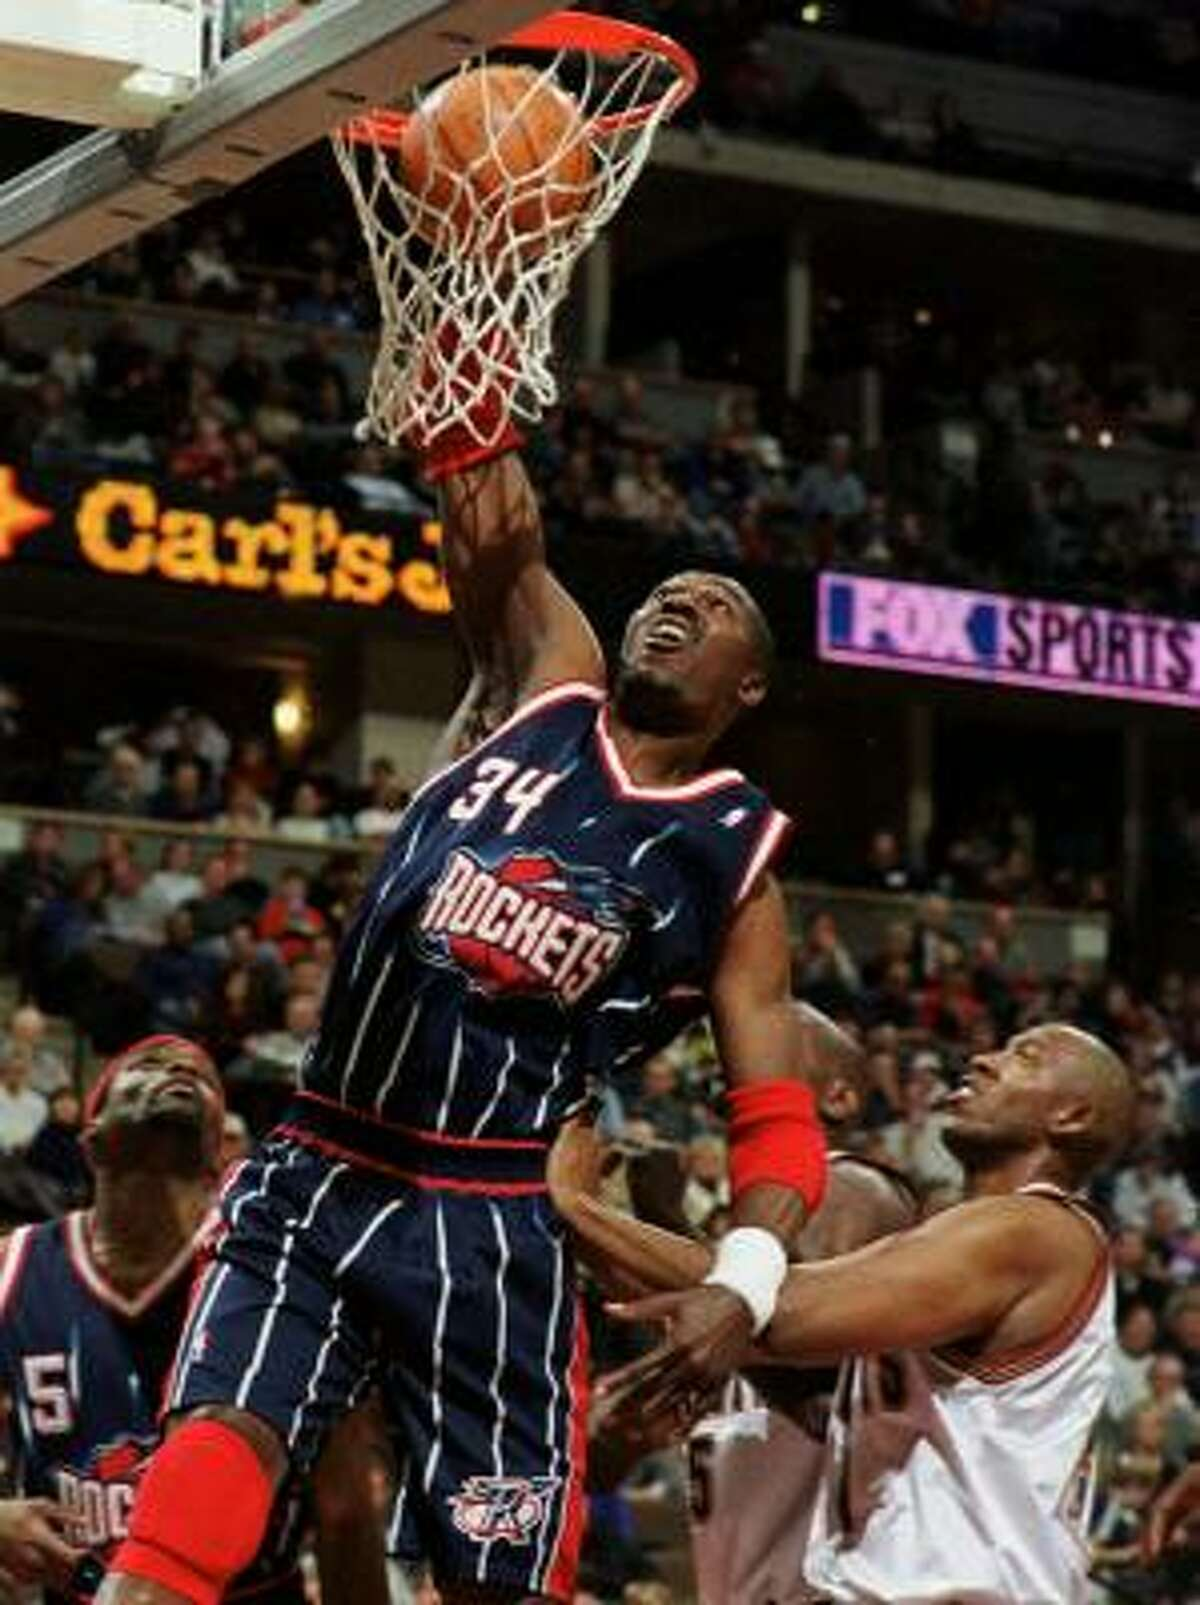 As Denver's Popeye Jones found out in 2000, there's nothing Hakeem Olajuwon liked to do more than dunk.